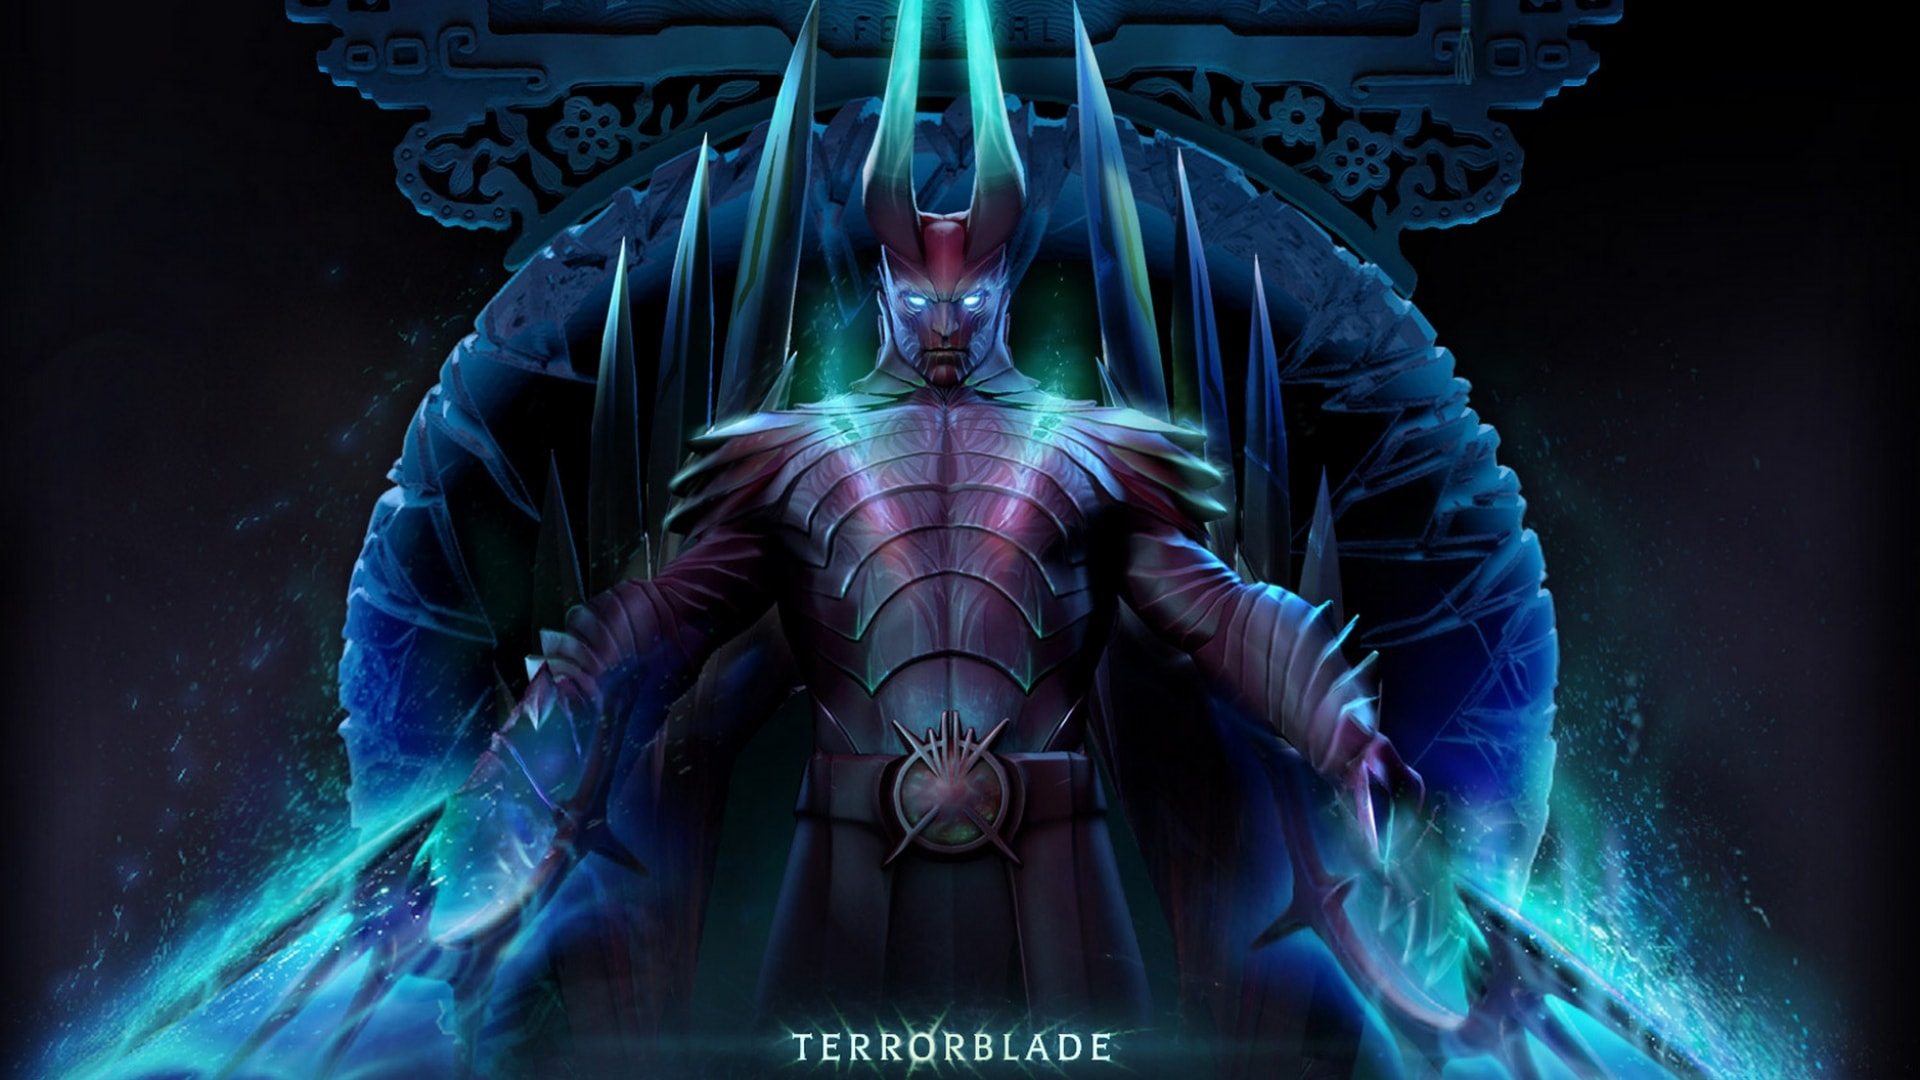 dota2 : terrorblade hd wallpapers | 7wallpapers